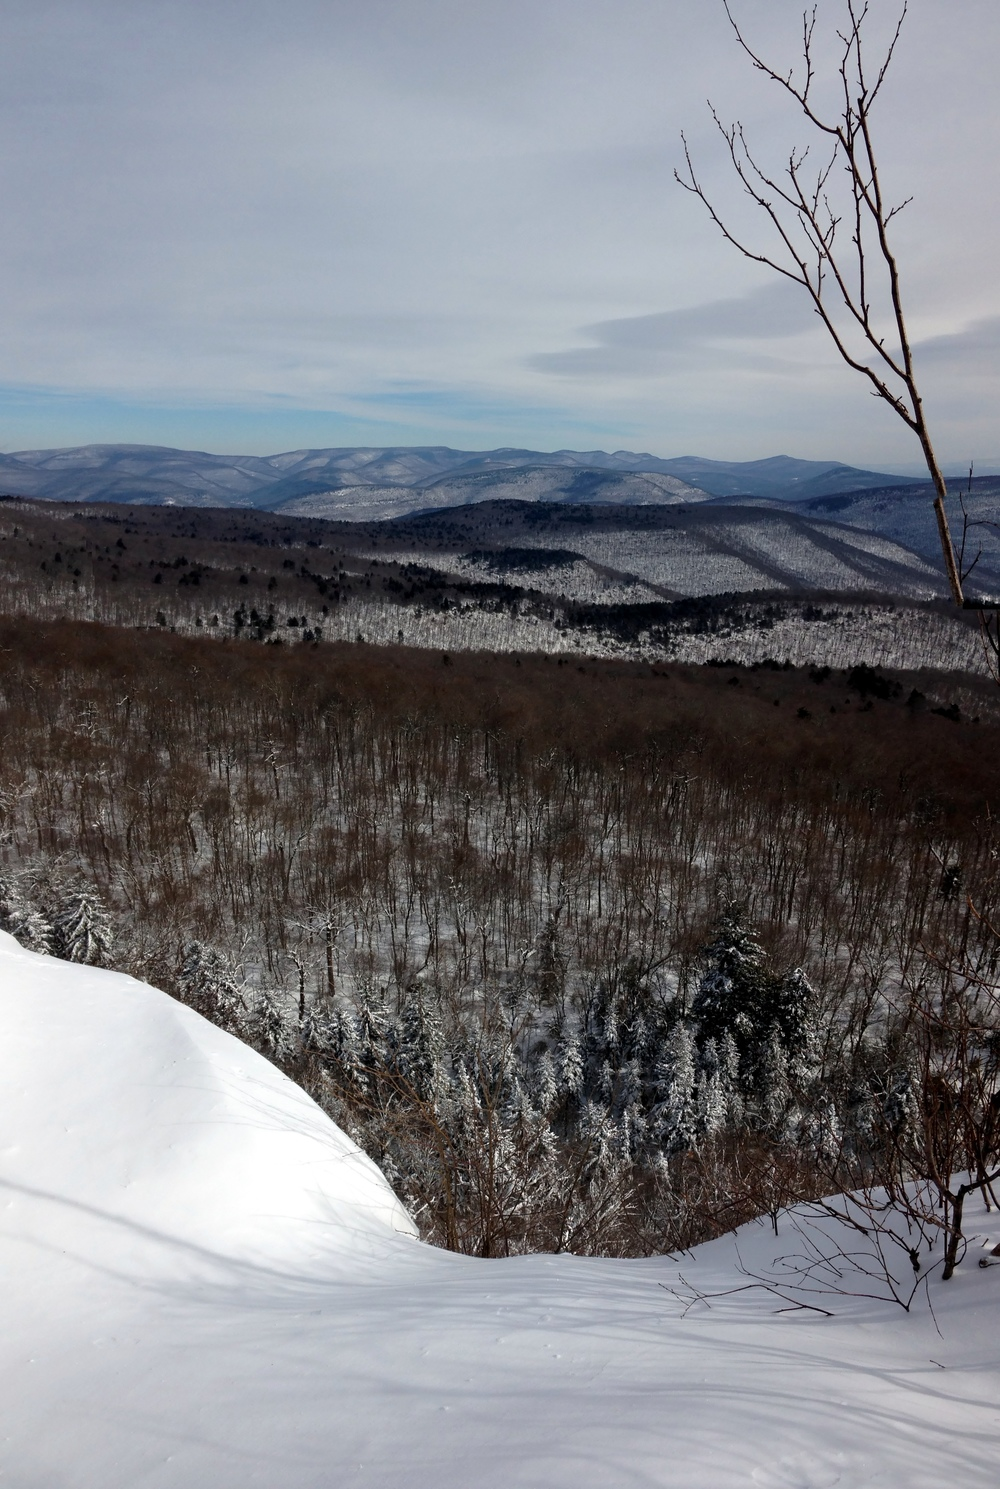 View from Giant Ledge toward Woodland Valley